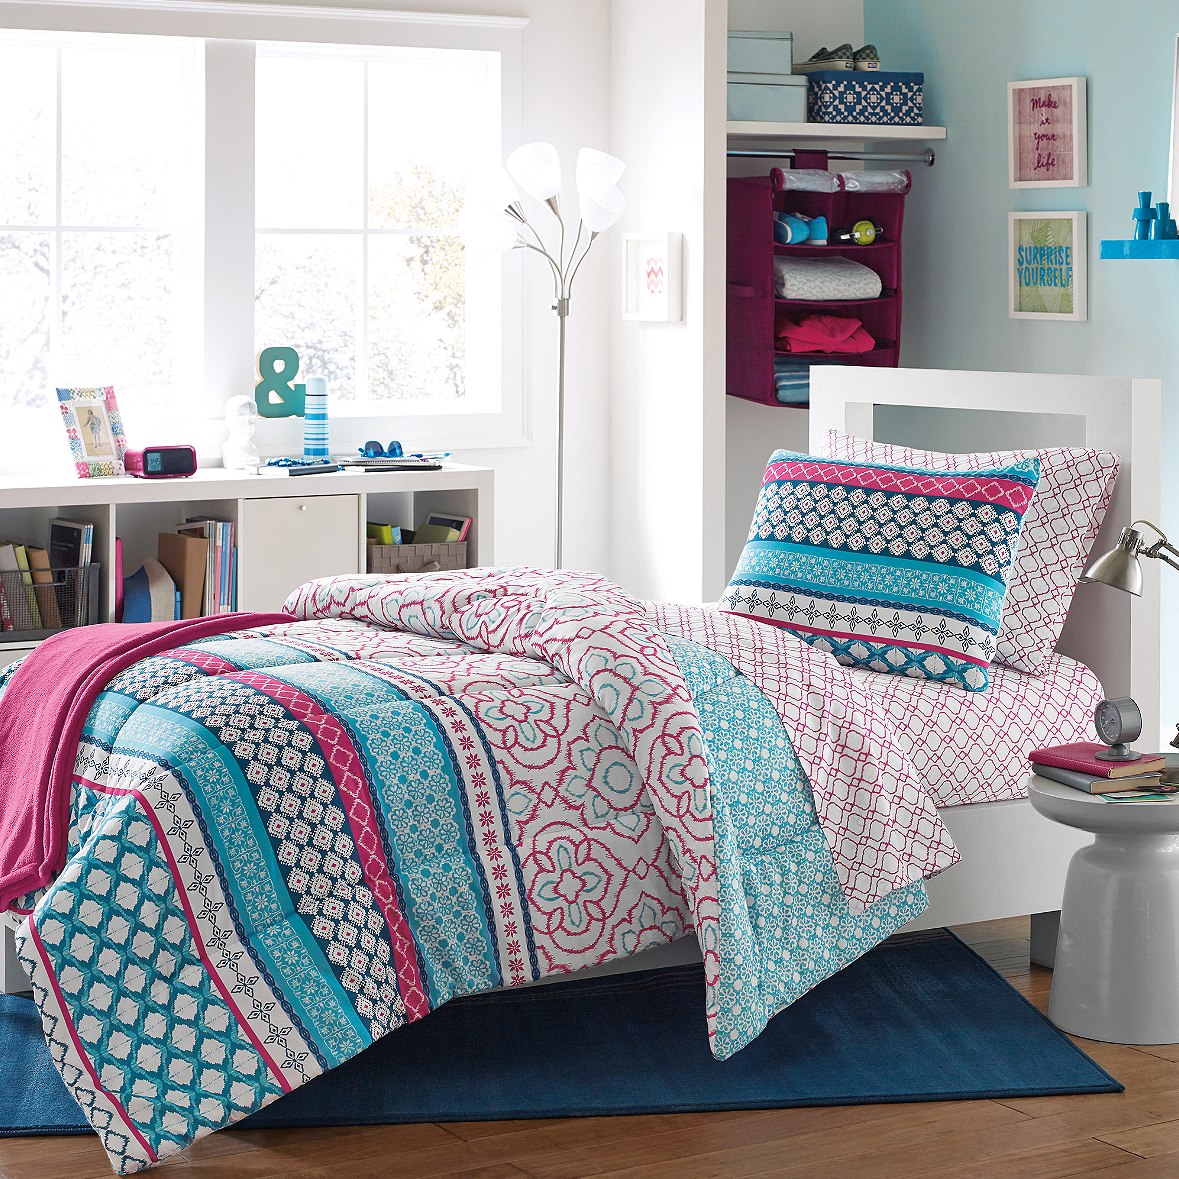 Bed Bath Beyond Summer Quilts